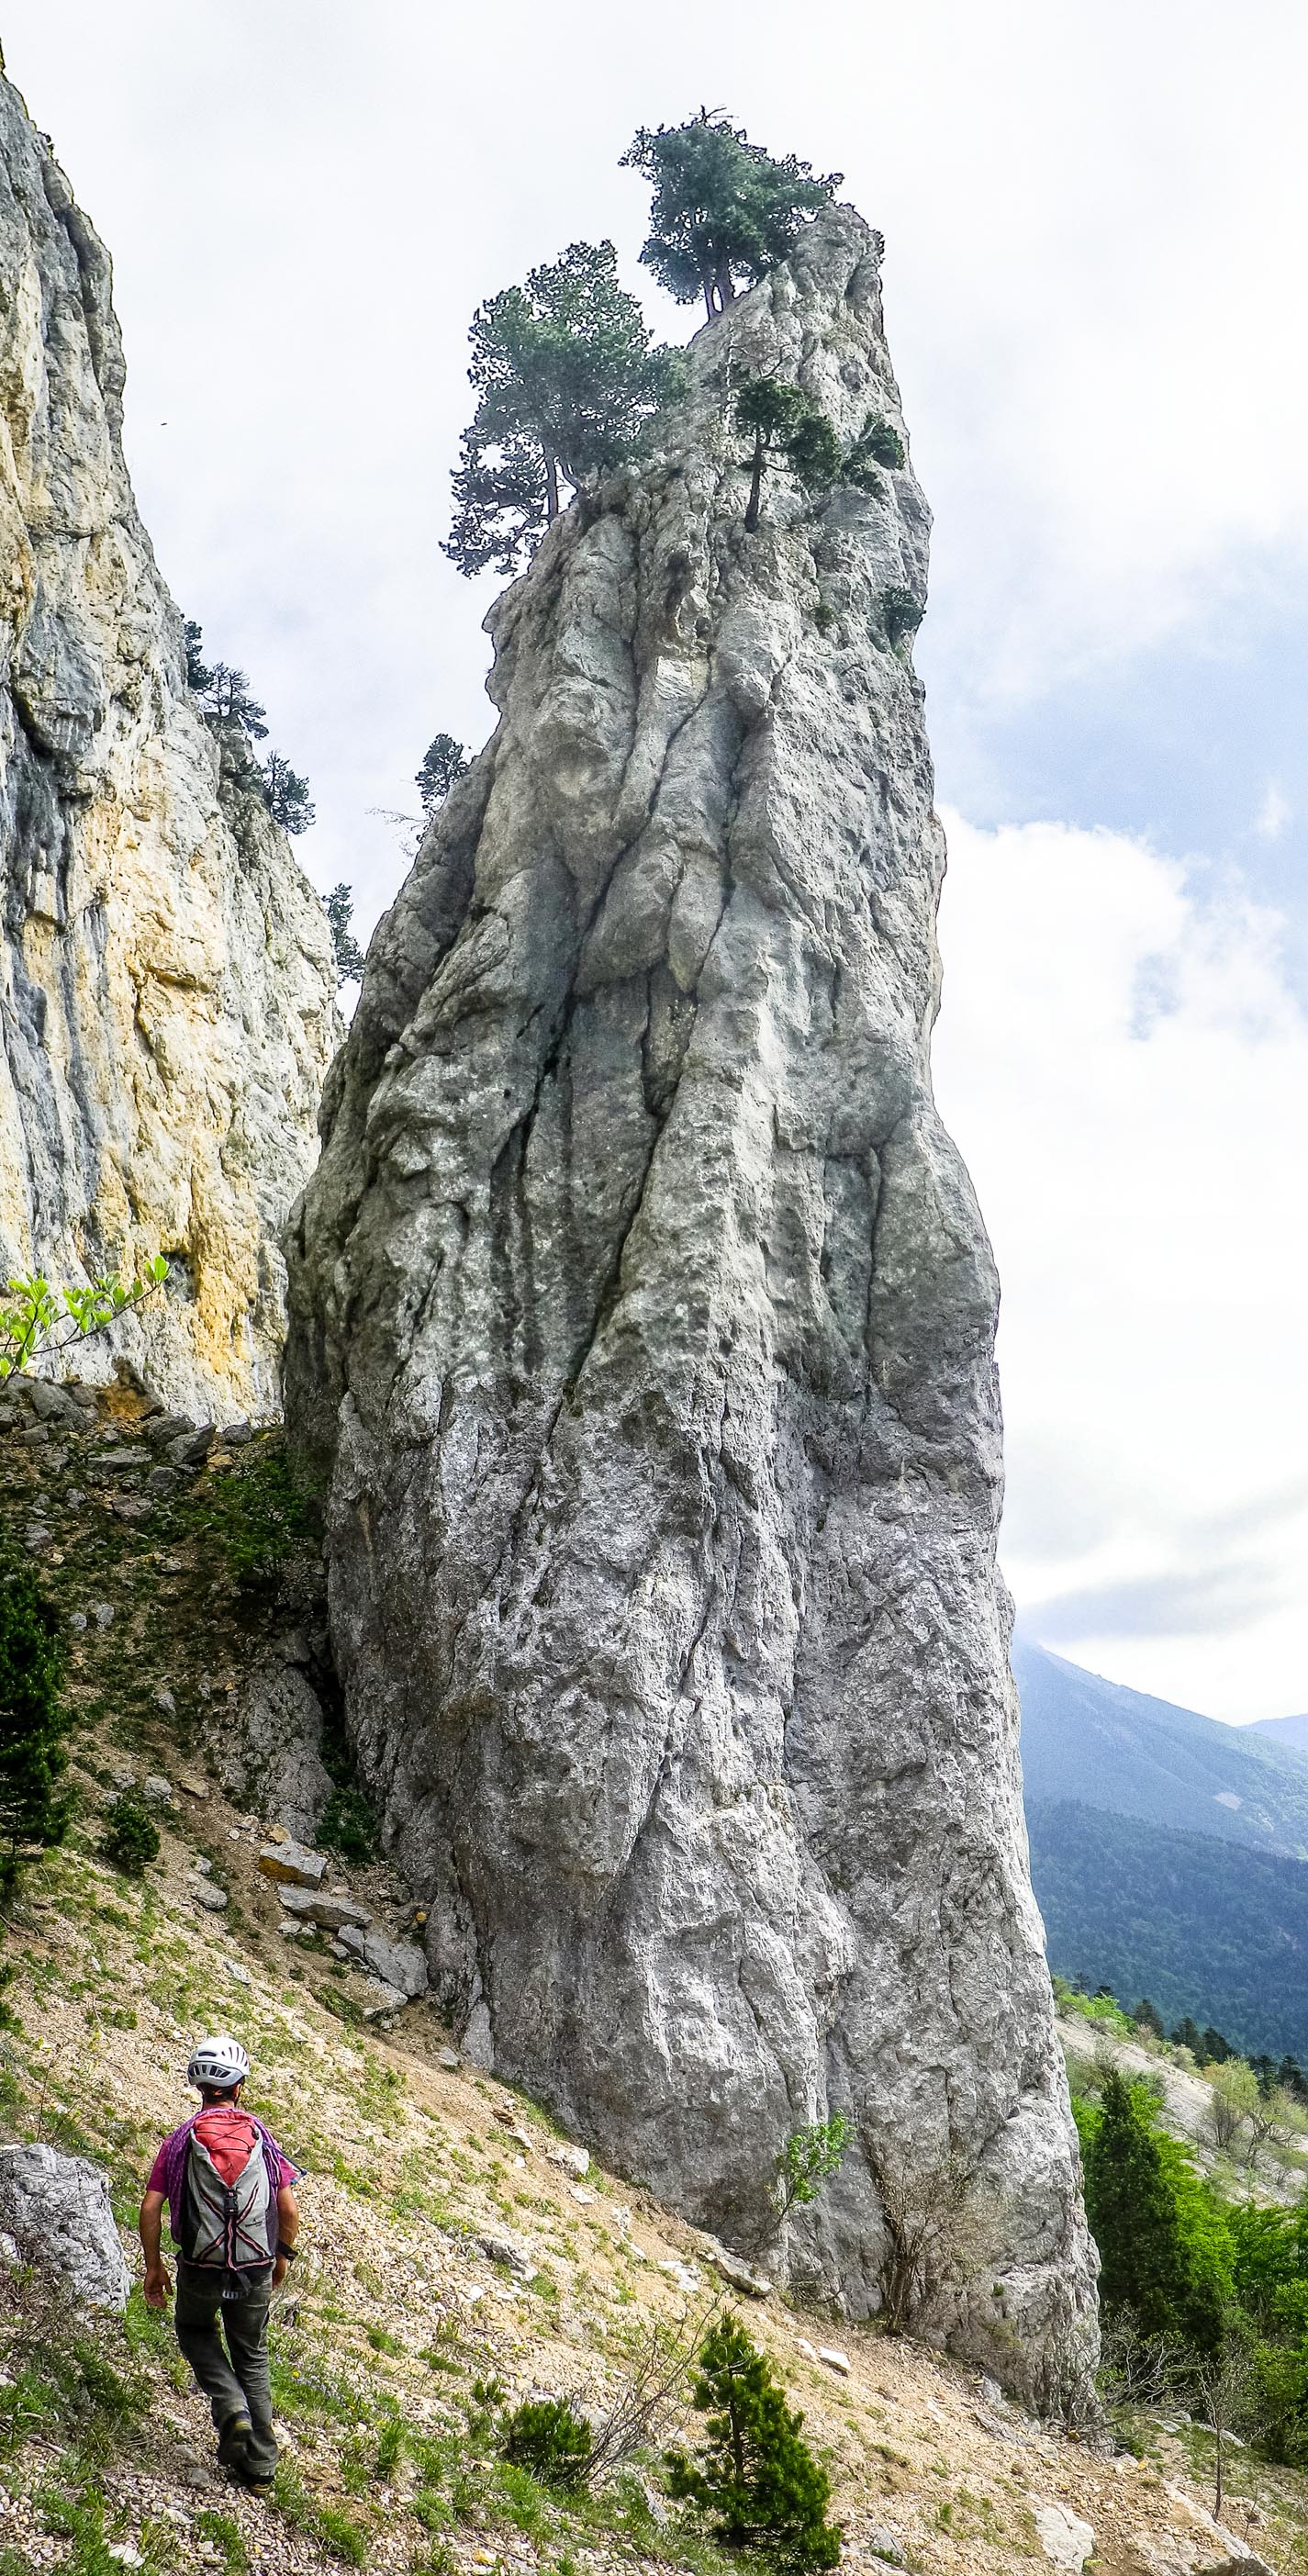 L'aiguille en question